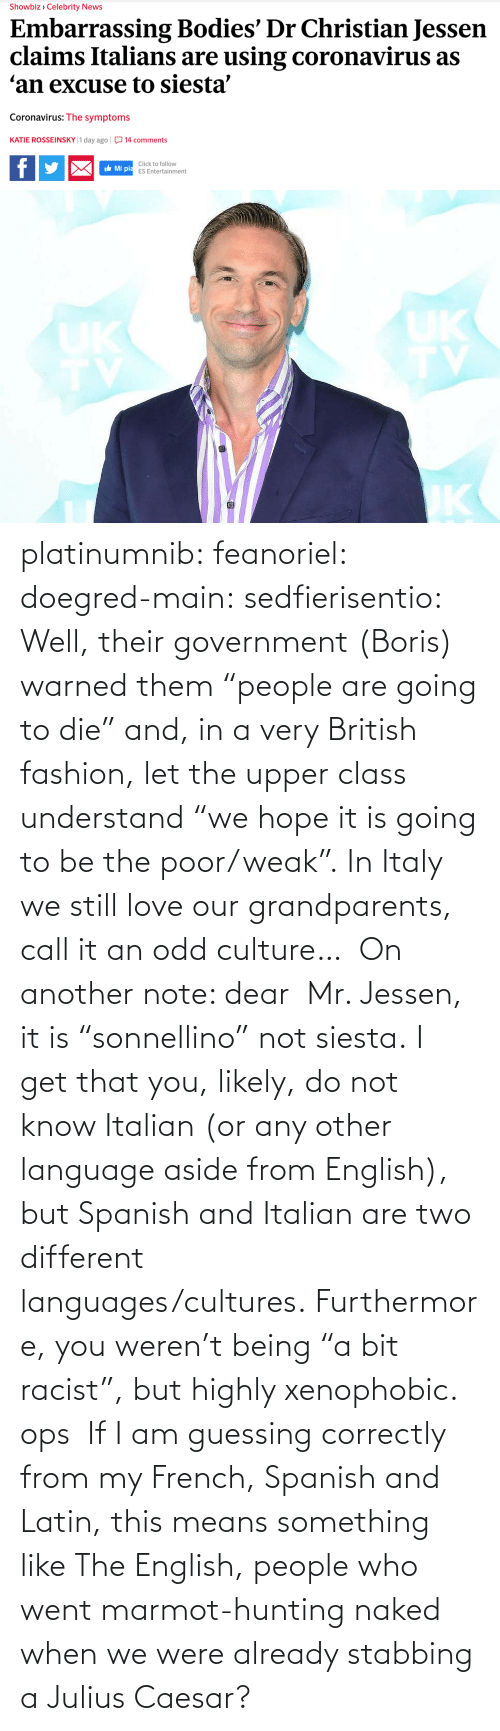 "Fashion: platinumnib:  feanoriel: doegred-main:  sedfierisentio:  Well, their government (Boris) warned them ""people are going to die"" and, in a very British fashion, let the upper class understand ""we hope it is going to be the poor/weak"". In Italy we still love our grandparents, call it an odd culture…  On another note: dear  Mr. Jessen, it is ""sonnellino"" not siesta. I get that you, likely, do not know Italian (or any other language aside from English), but Spanish and Italian are two different languages/cultures. Furthermore, you weren't being ""a bit racist"", but highly xenophobic.   ops   If I am guessing correctly from my French, Spanish and Latin, this means something like The English, people who went marmot-hunting naked when we were already stabbing a Julius Caesar?"